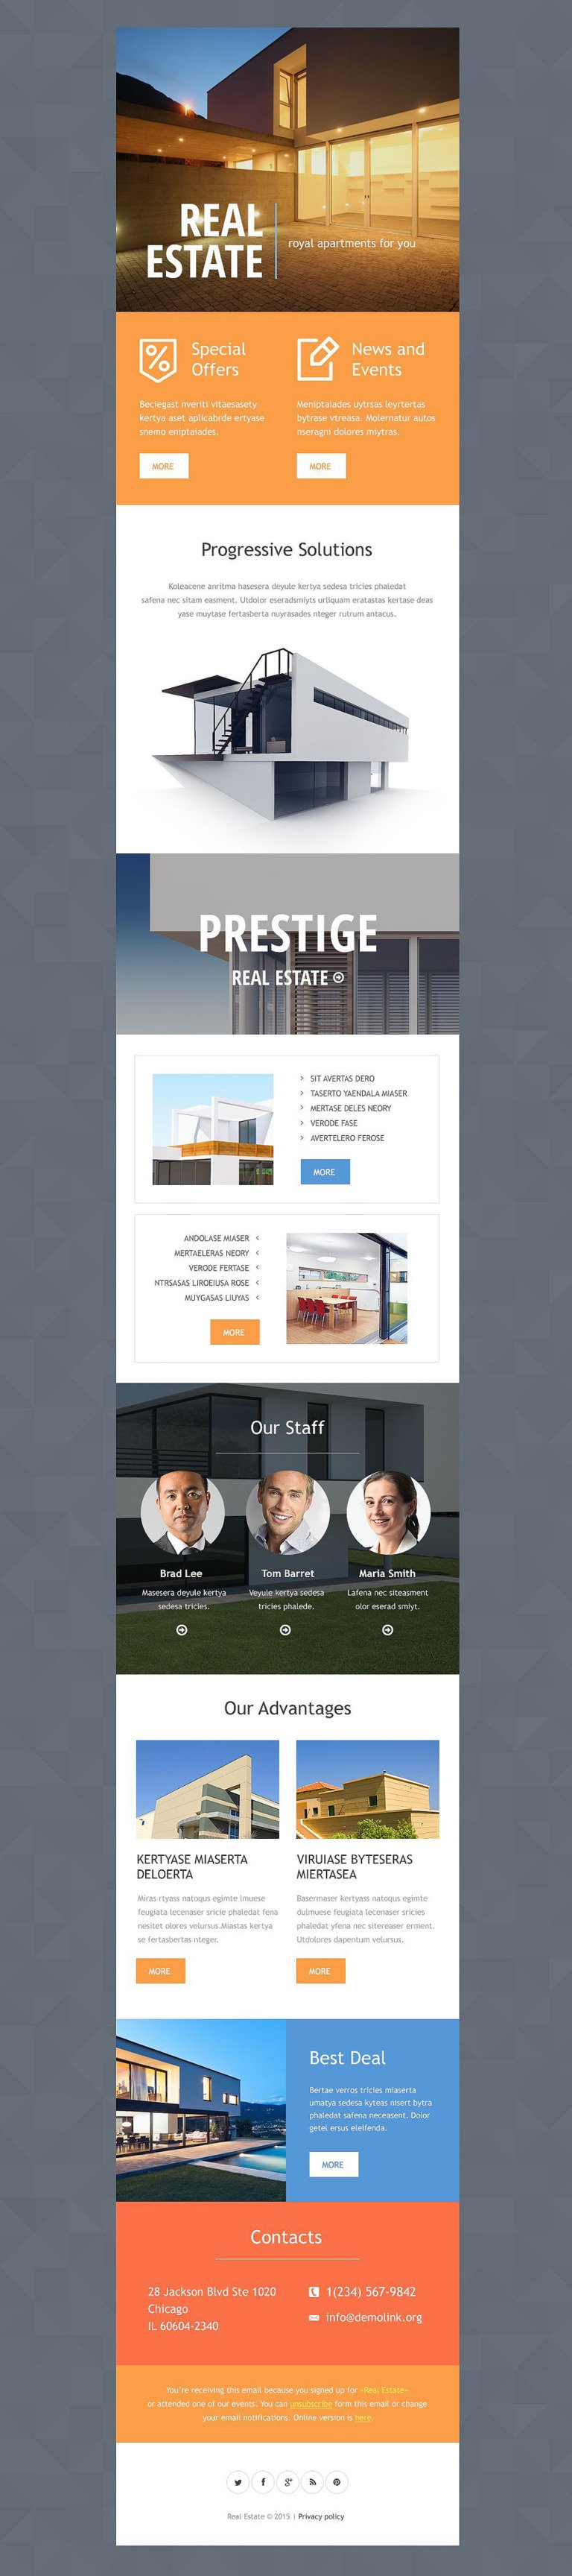 Real Estate Agency Responsive Newsletter Template #53671